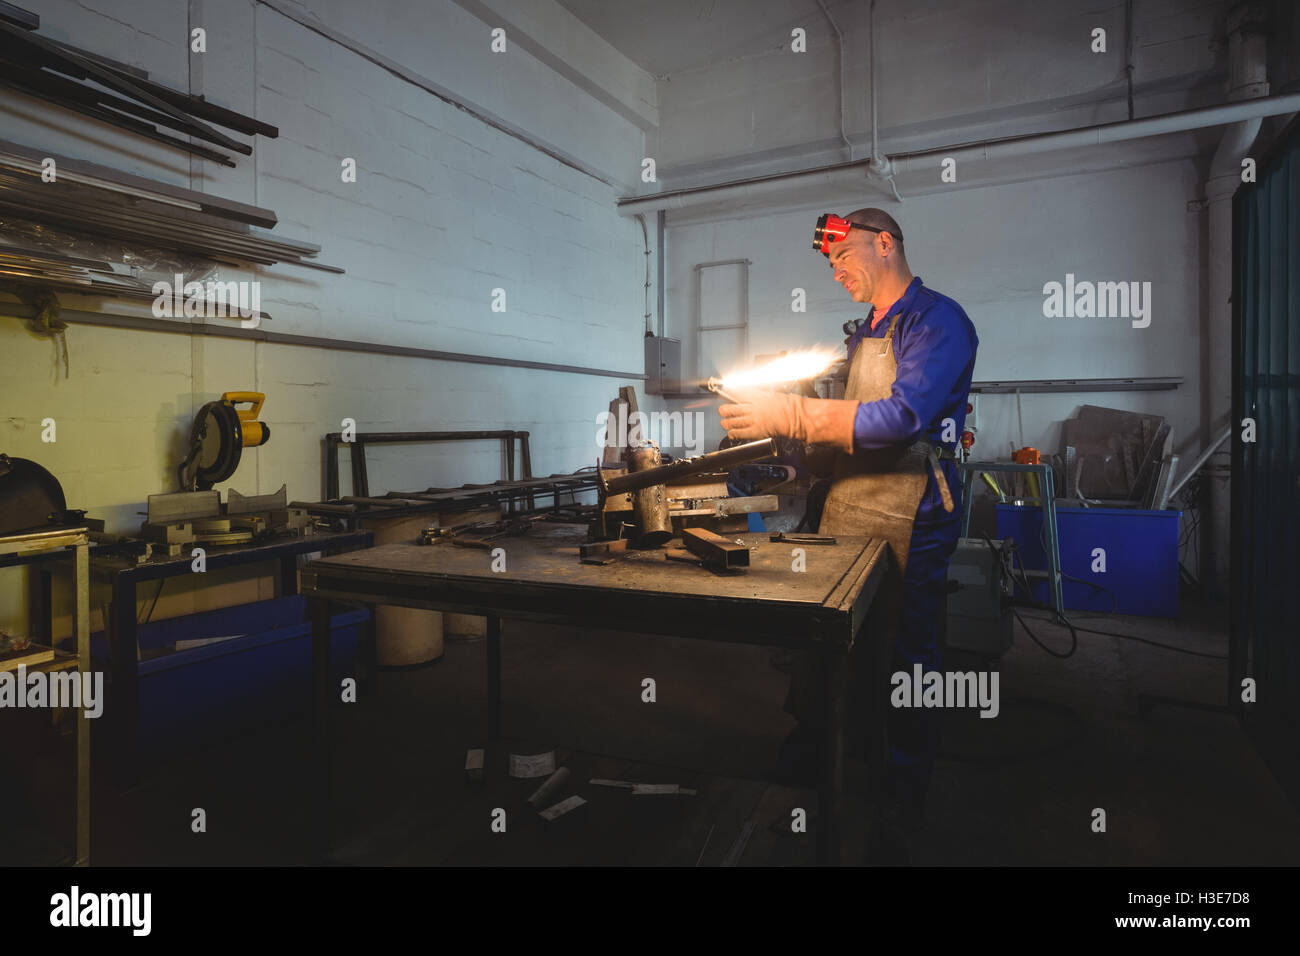 Male welder holding welding torch - Stock Image